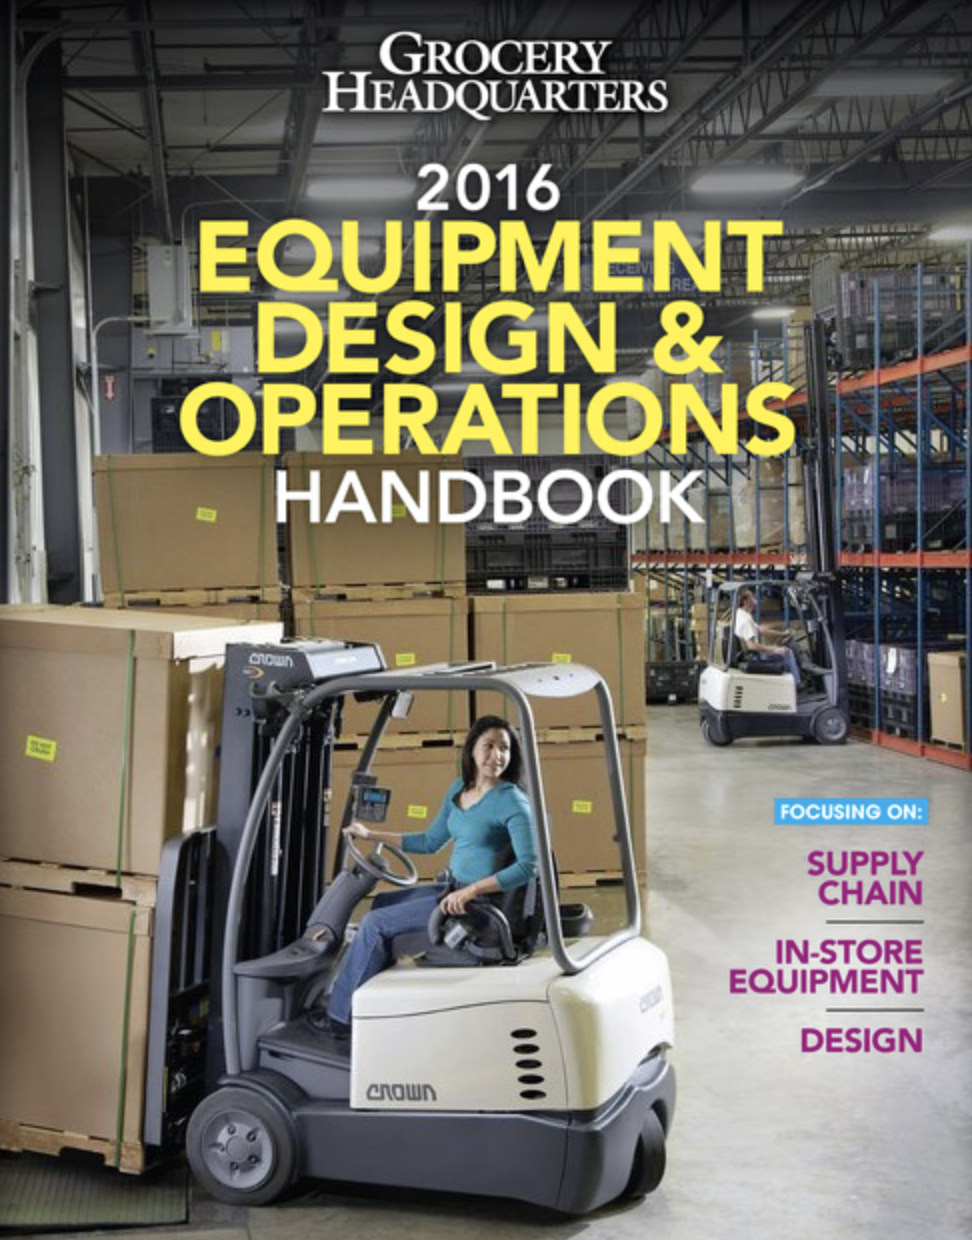 Winsight Grocery Business Magazine Equipment Handbook 2016 Issue